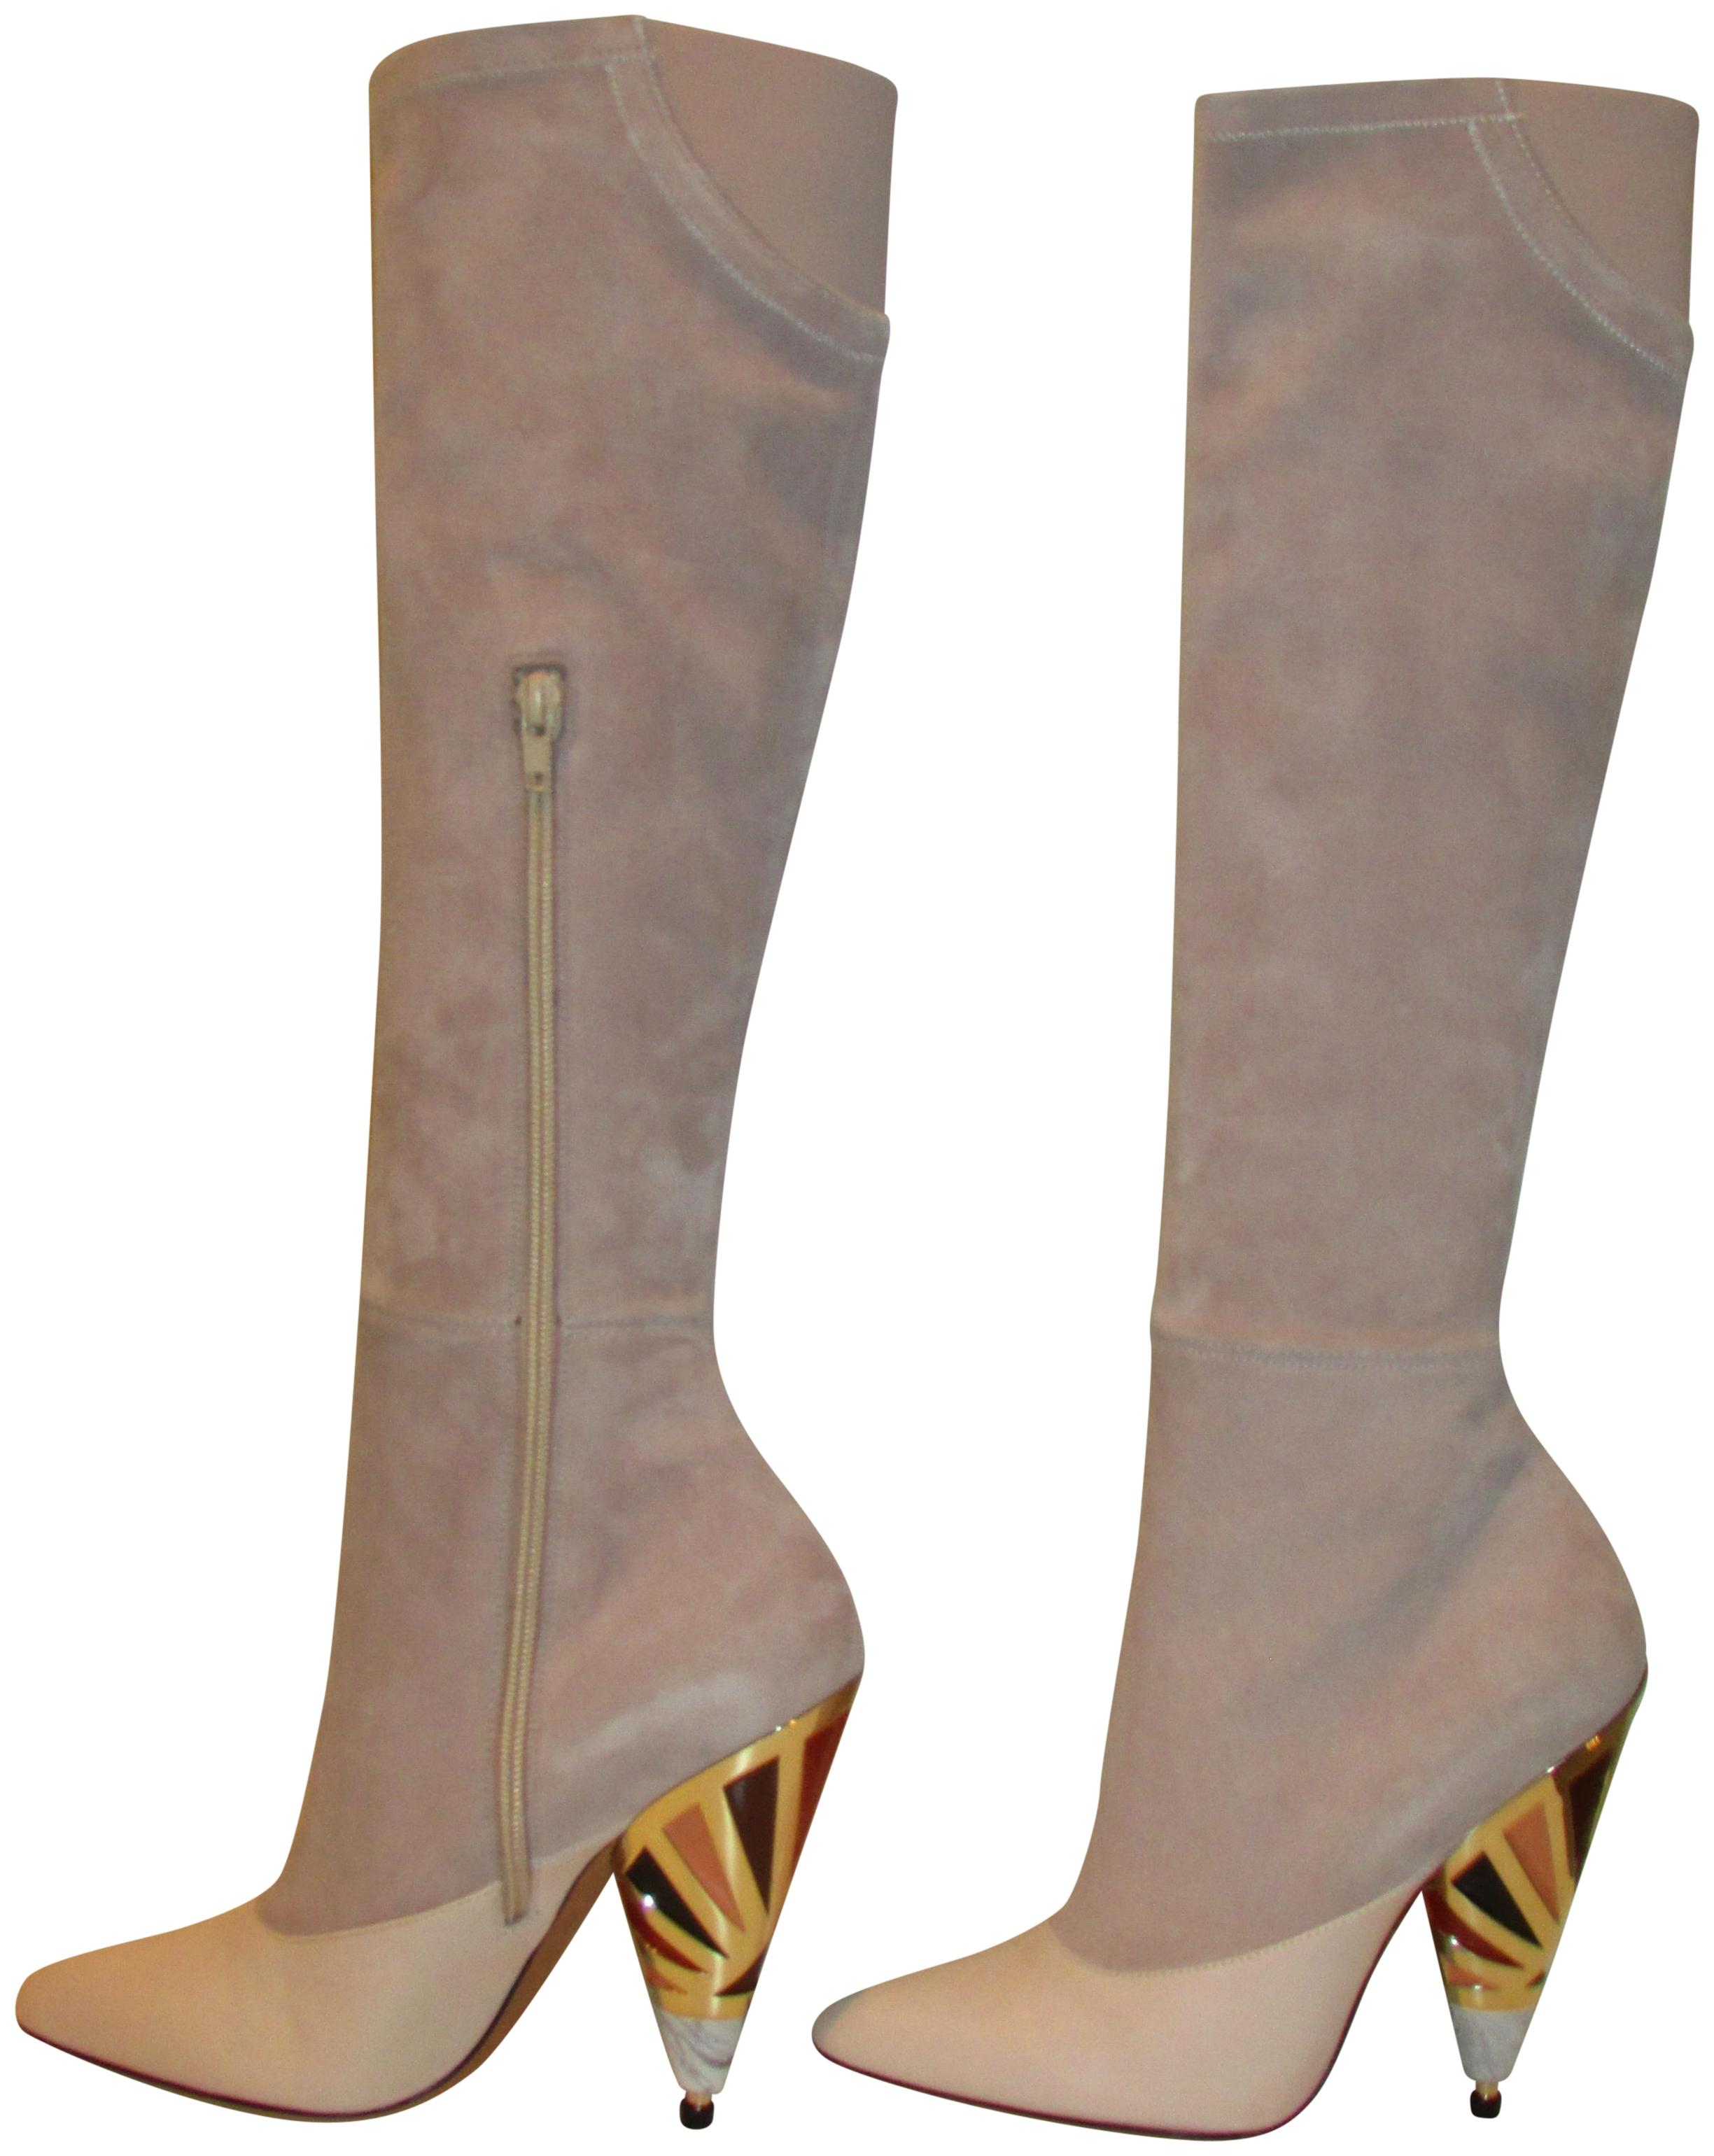 68cde6c0eb235 Givenchy Blush Pink Nude Egyptian Cone Heel Knee High Boots/Booties Size EU  37 (